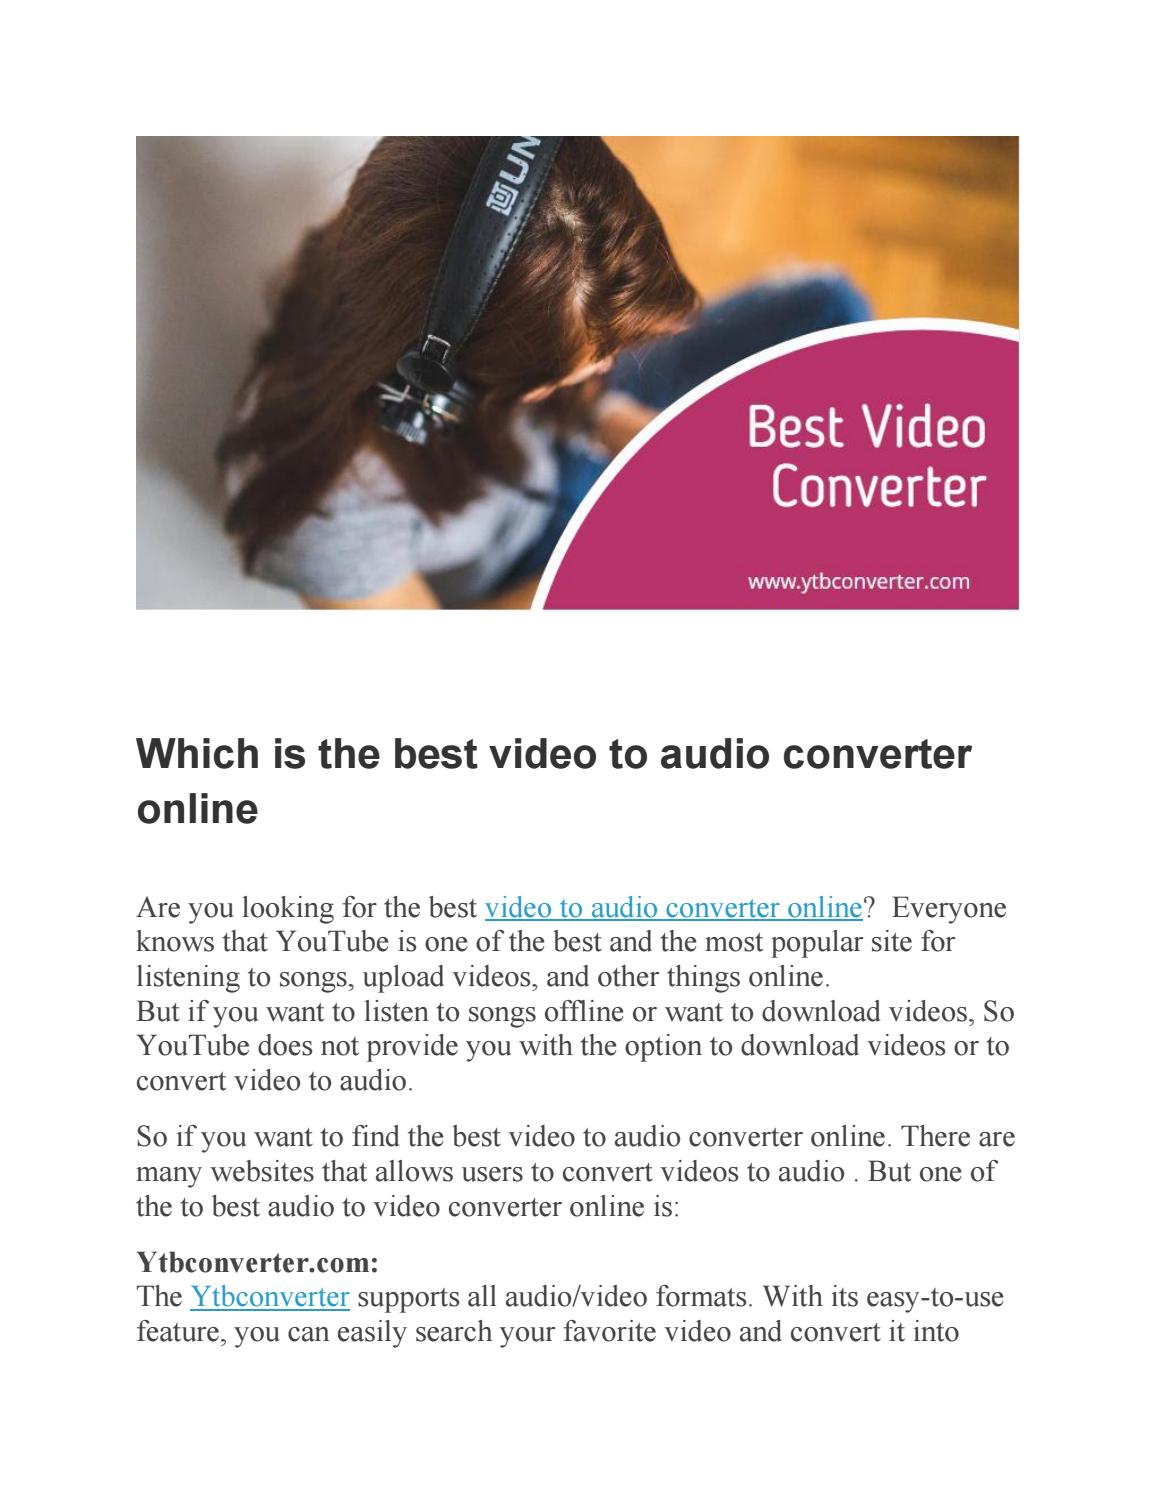 Which is the best video to audio converter online by